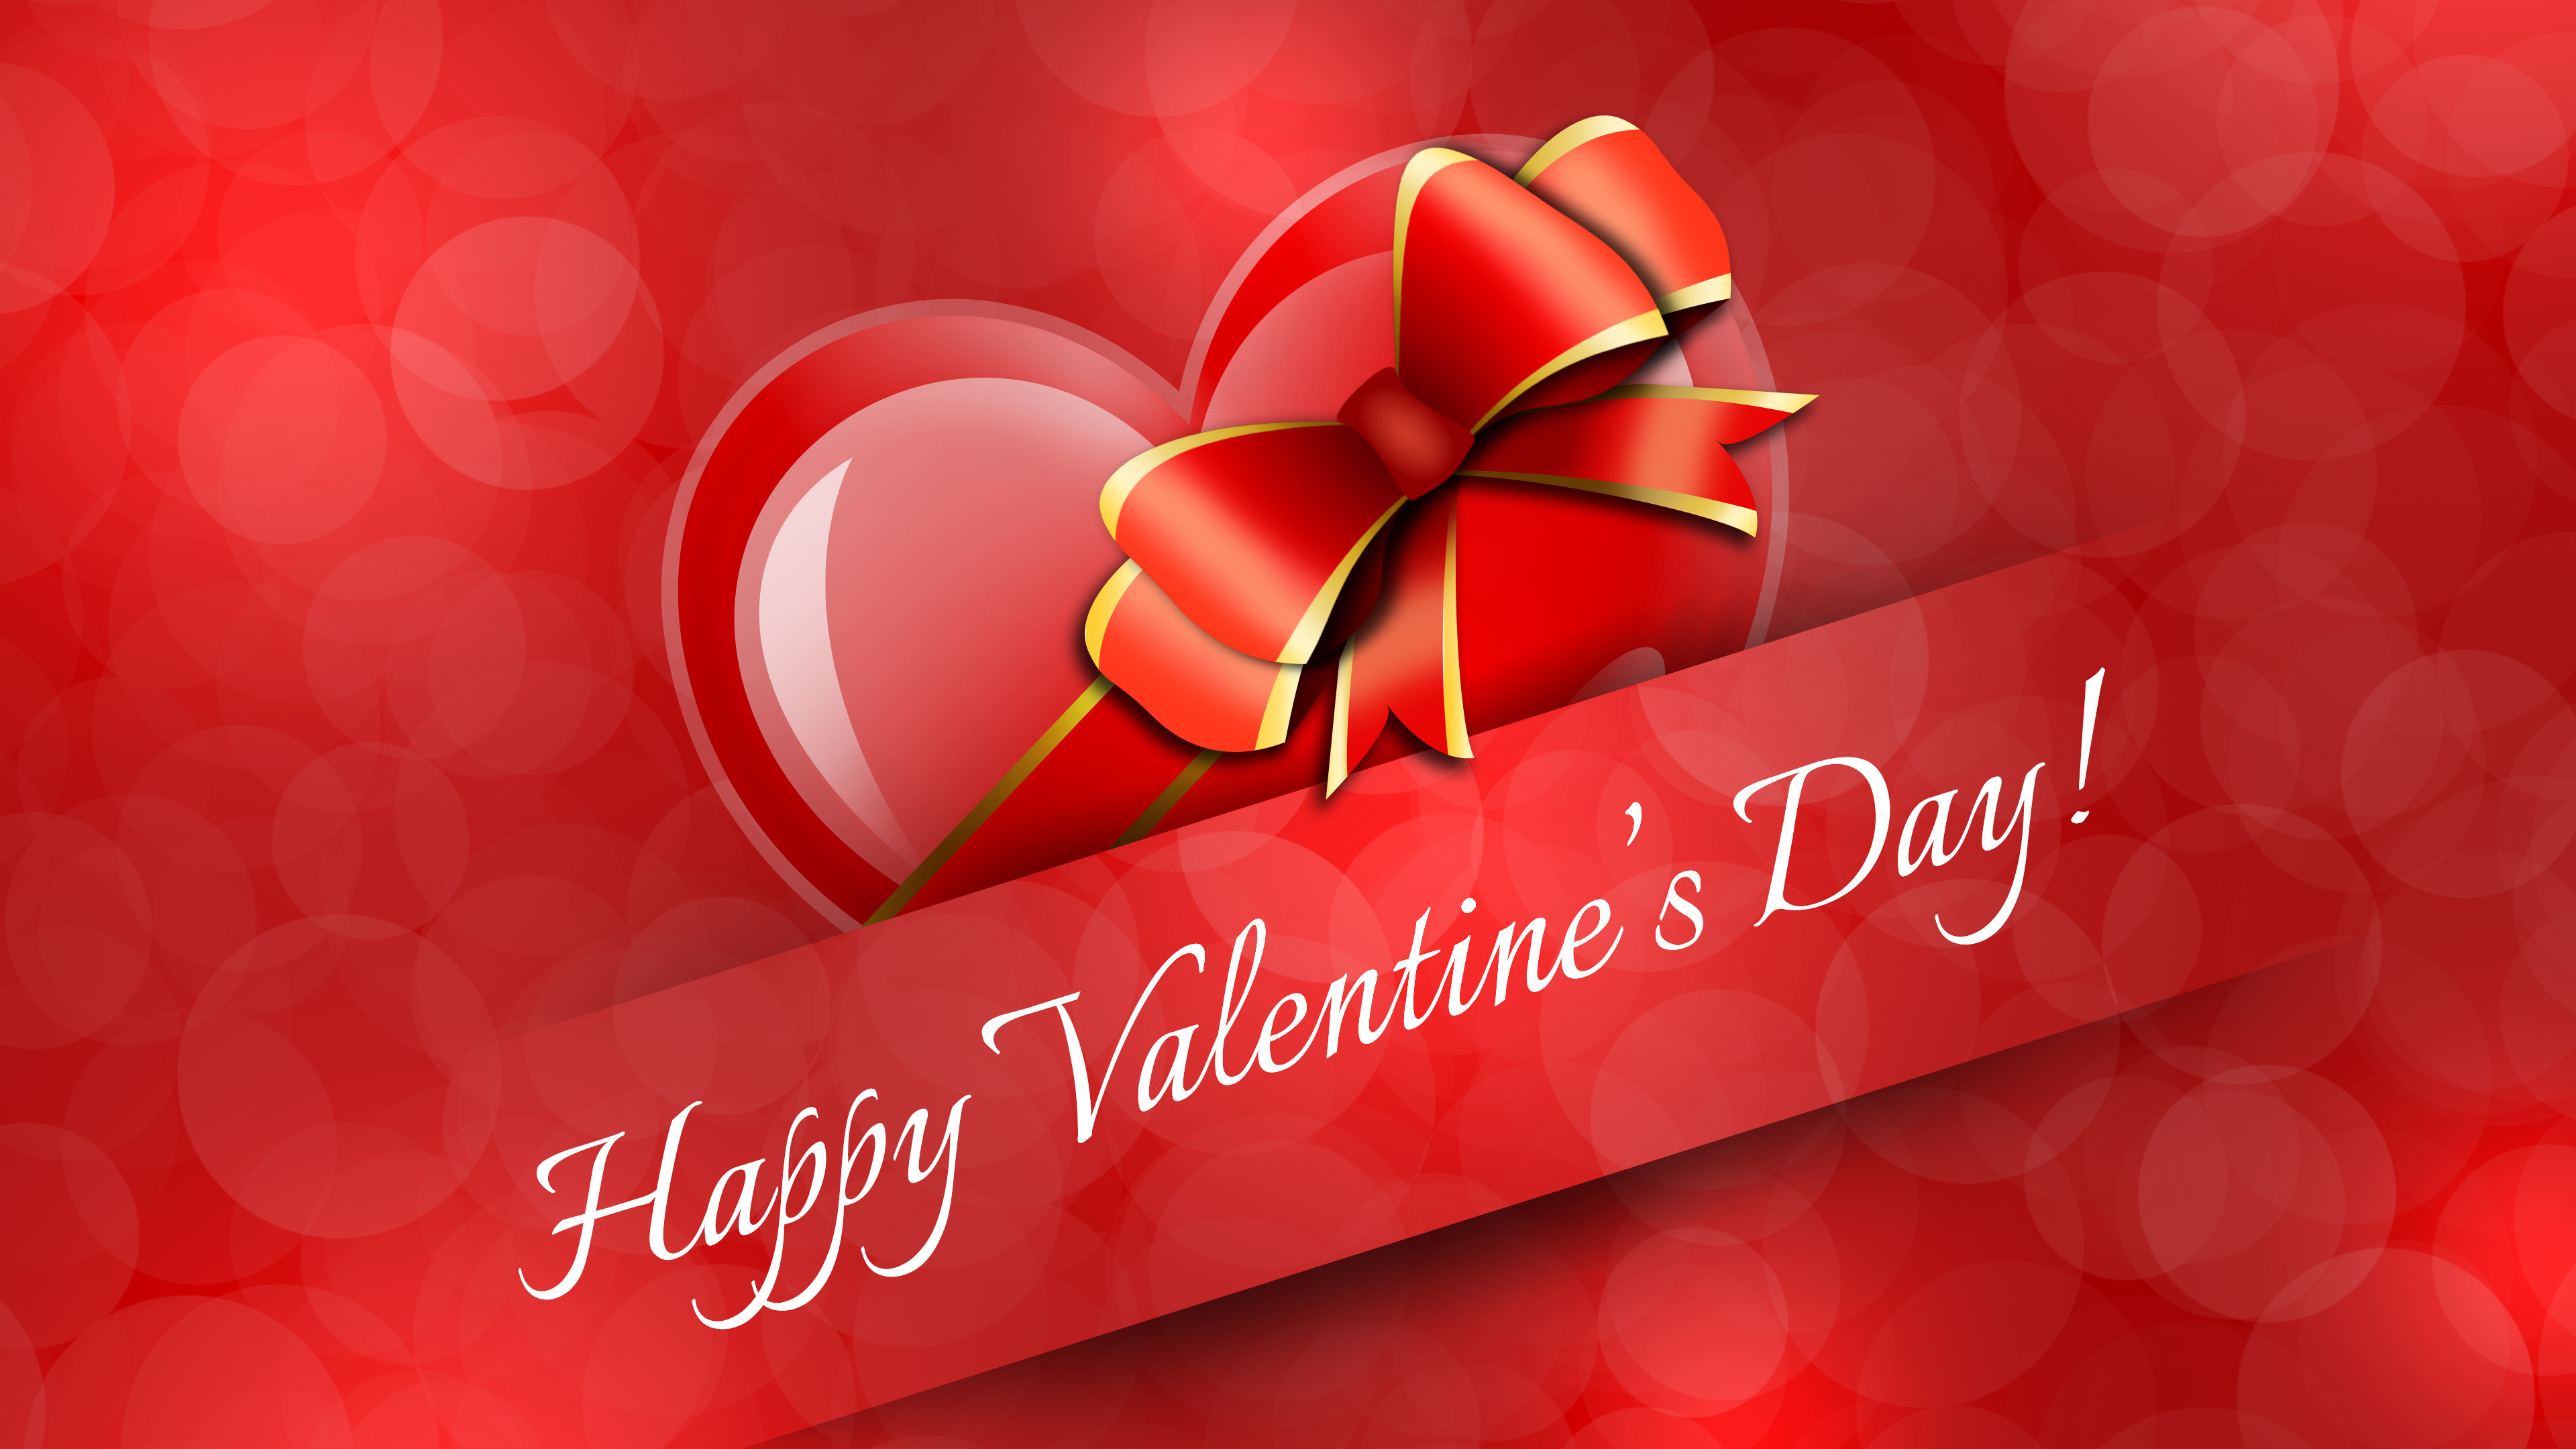 150+ HD Valentine Day Wallpapers for Your GF/BF